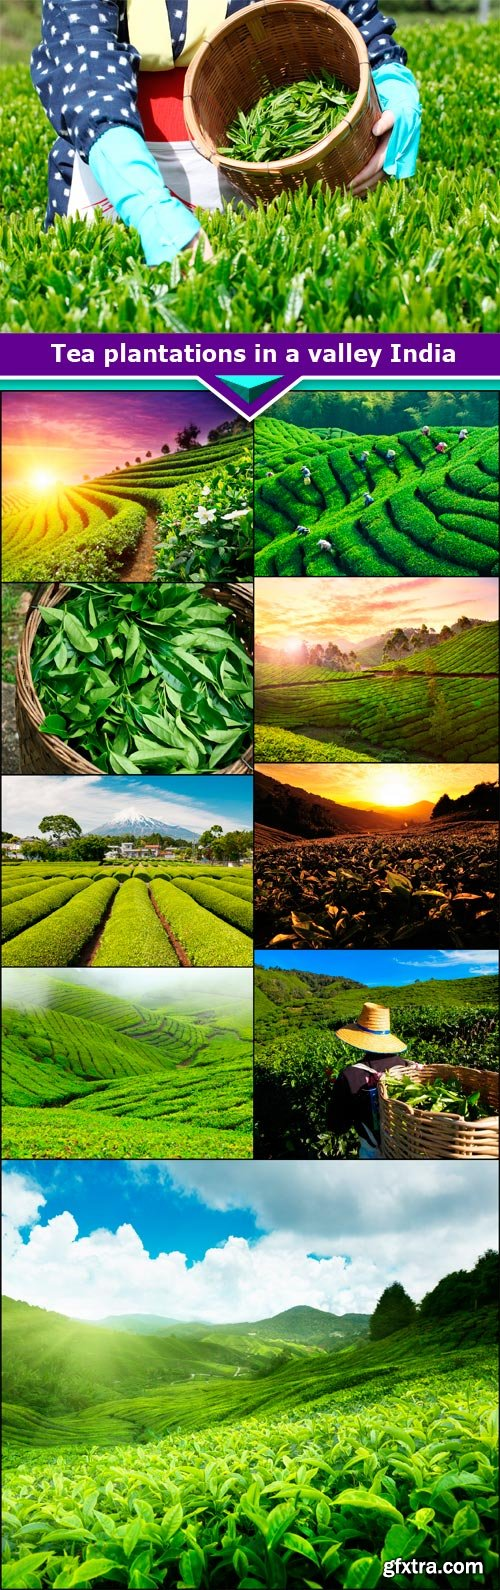 Tea plantations in a valley India 10X JPEG